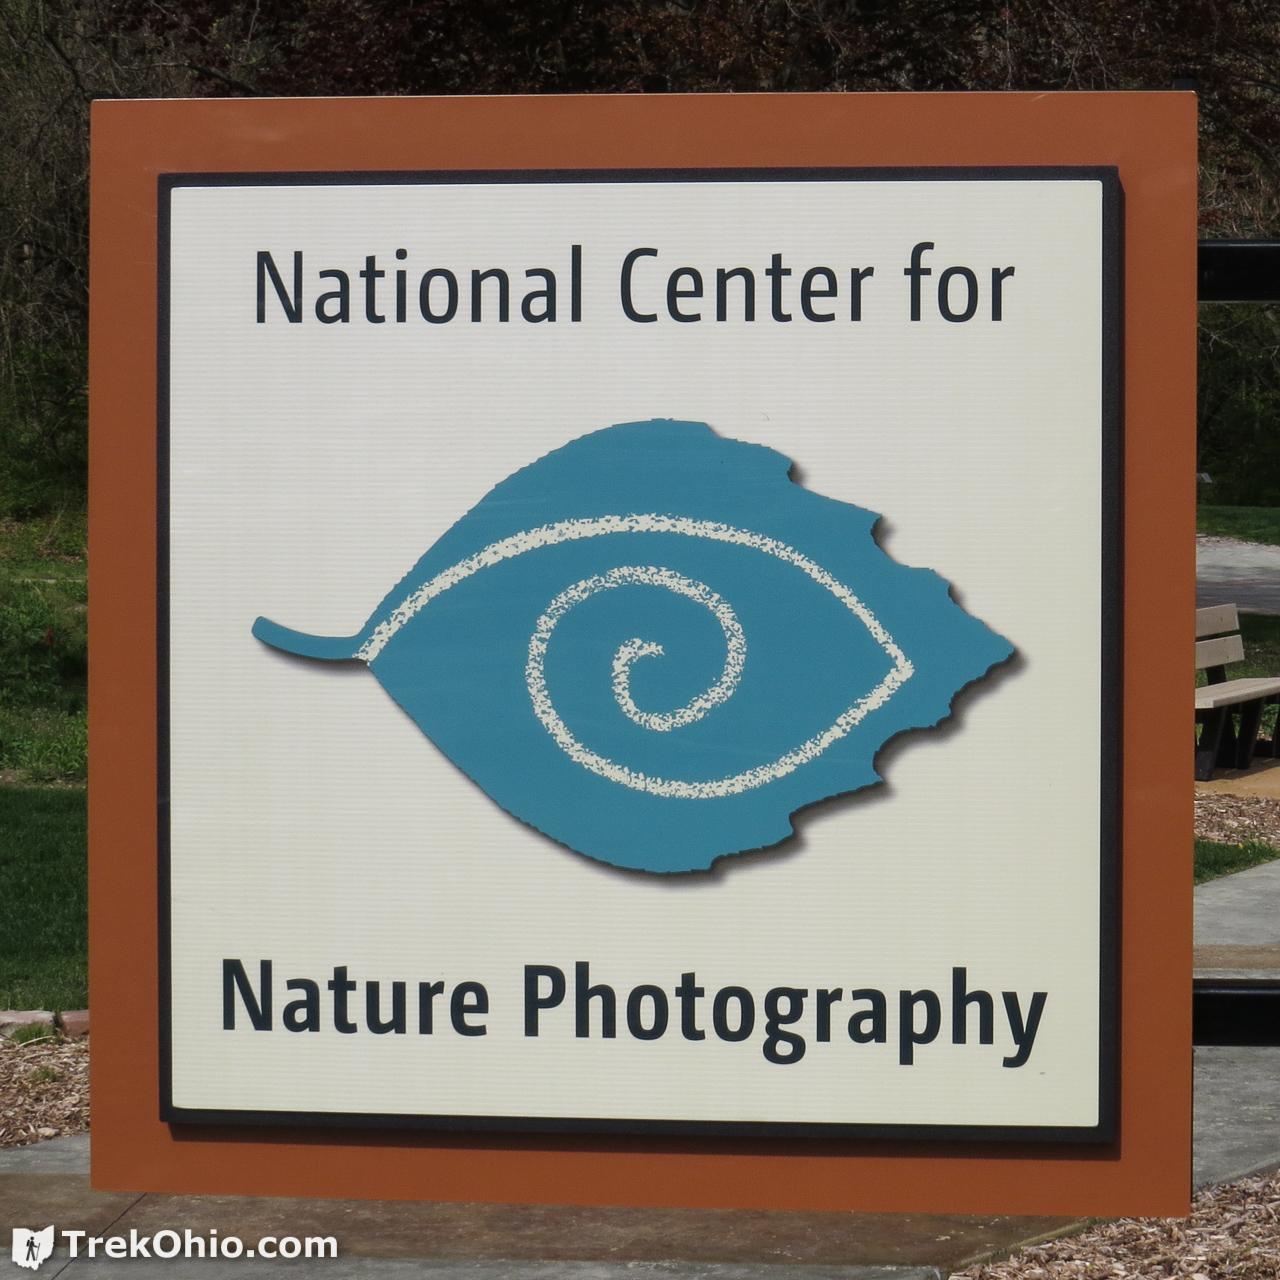 National Center for Nature Photography